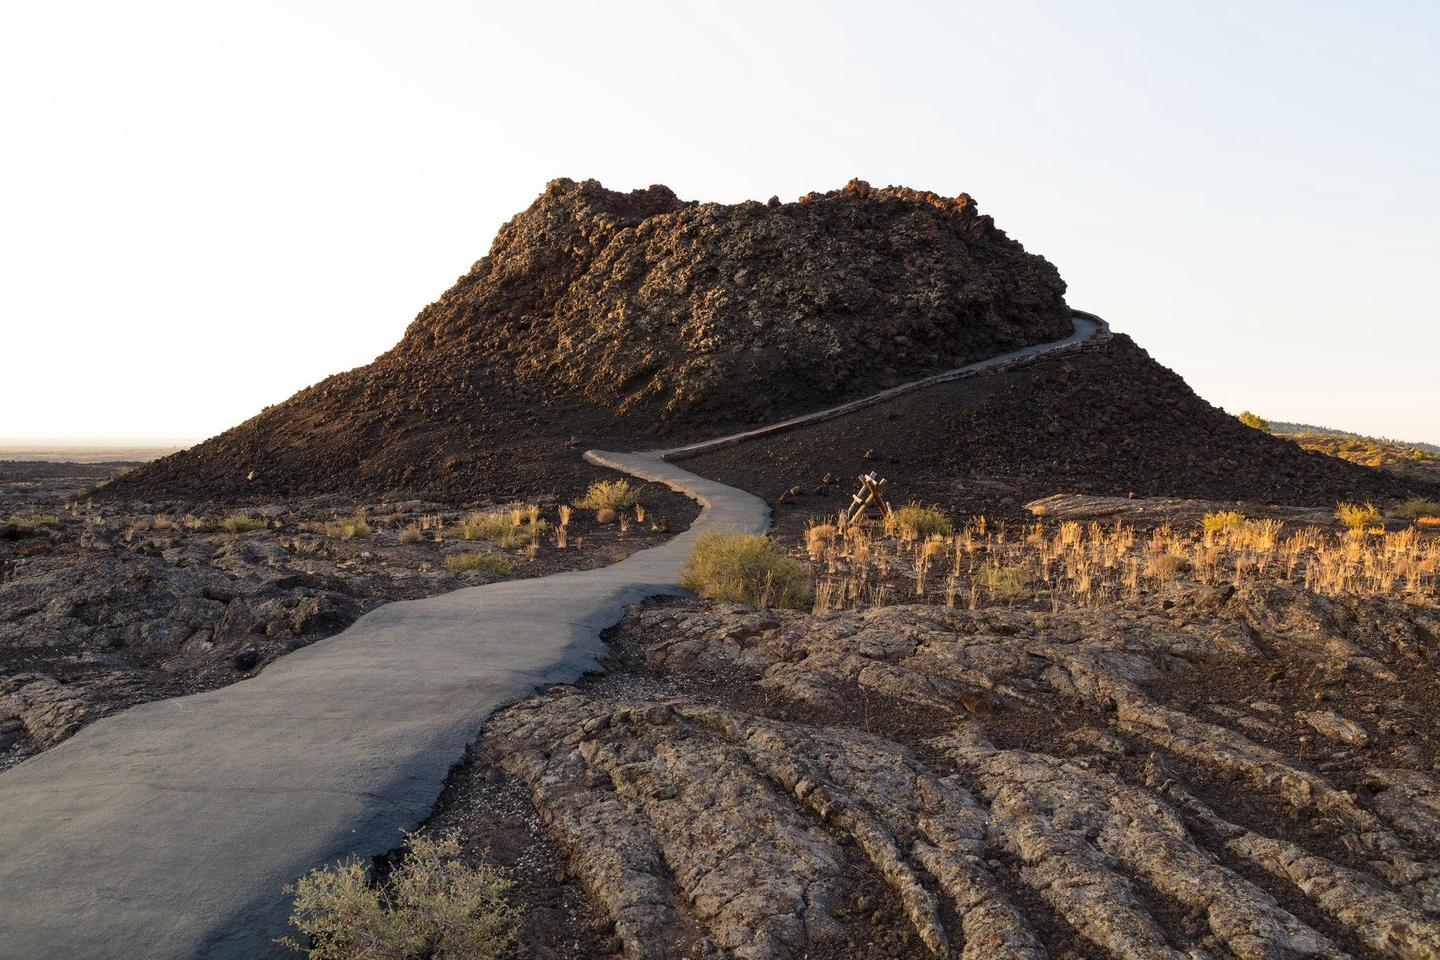 Explore Craters on FootTrails at Craters, like the Spatter Cone Trail, allow visitors to explore young volcanic features like spatter cones, cinder cones, and lava fields.